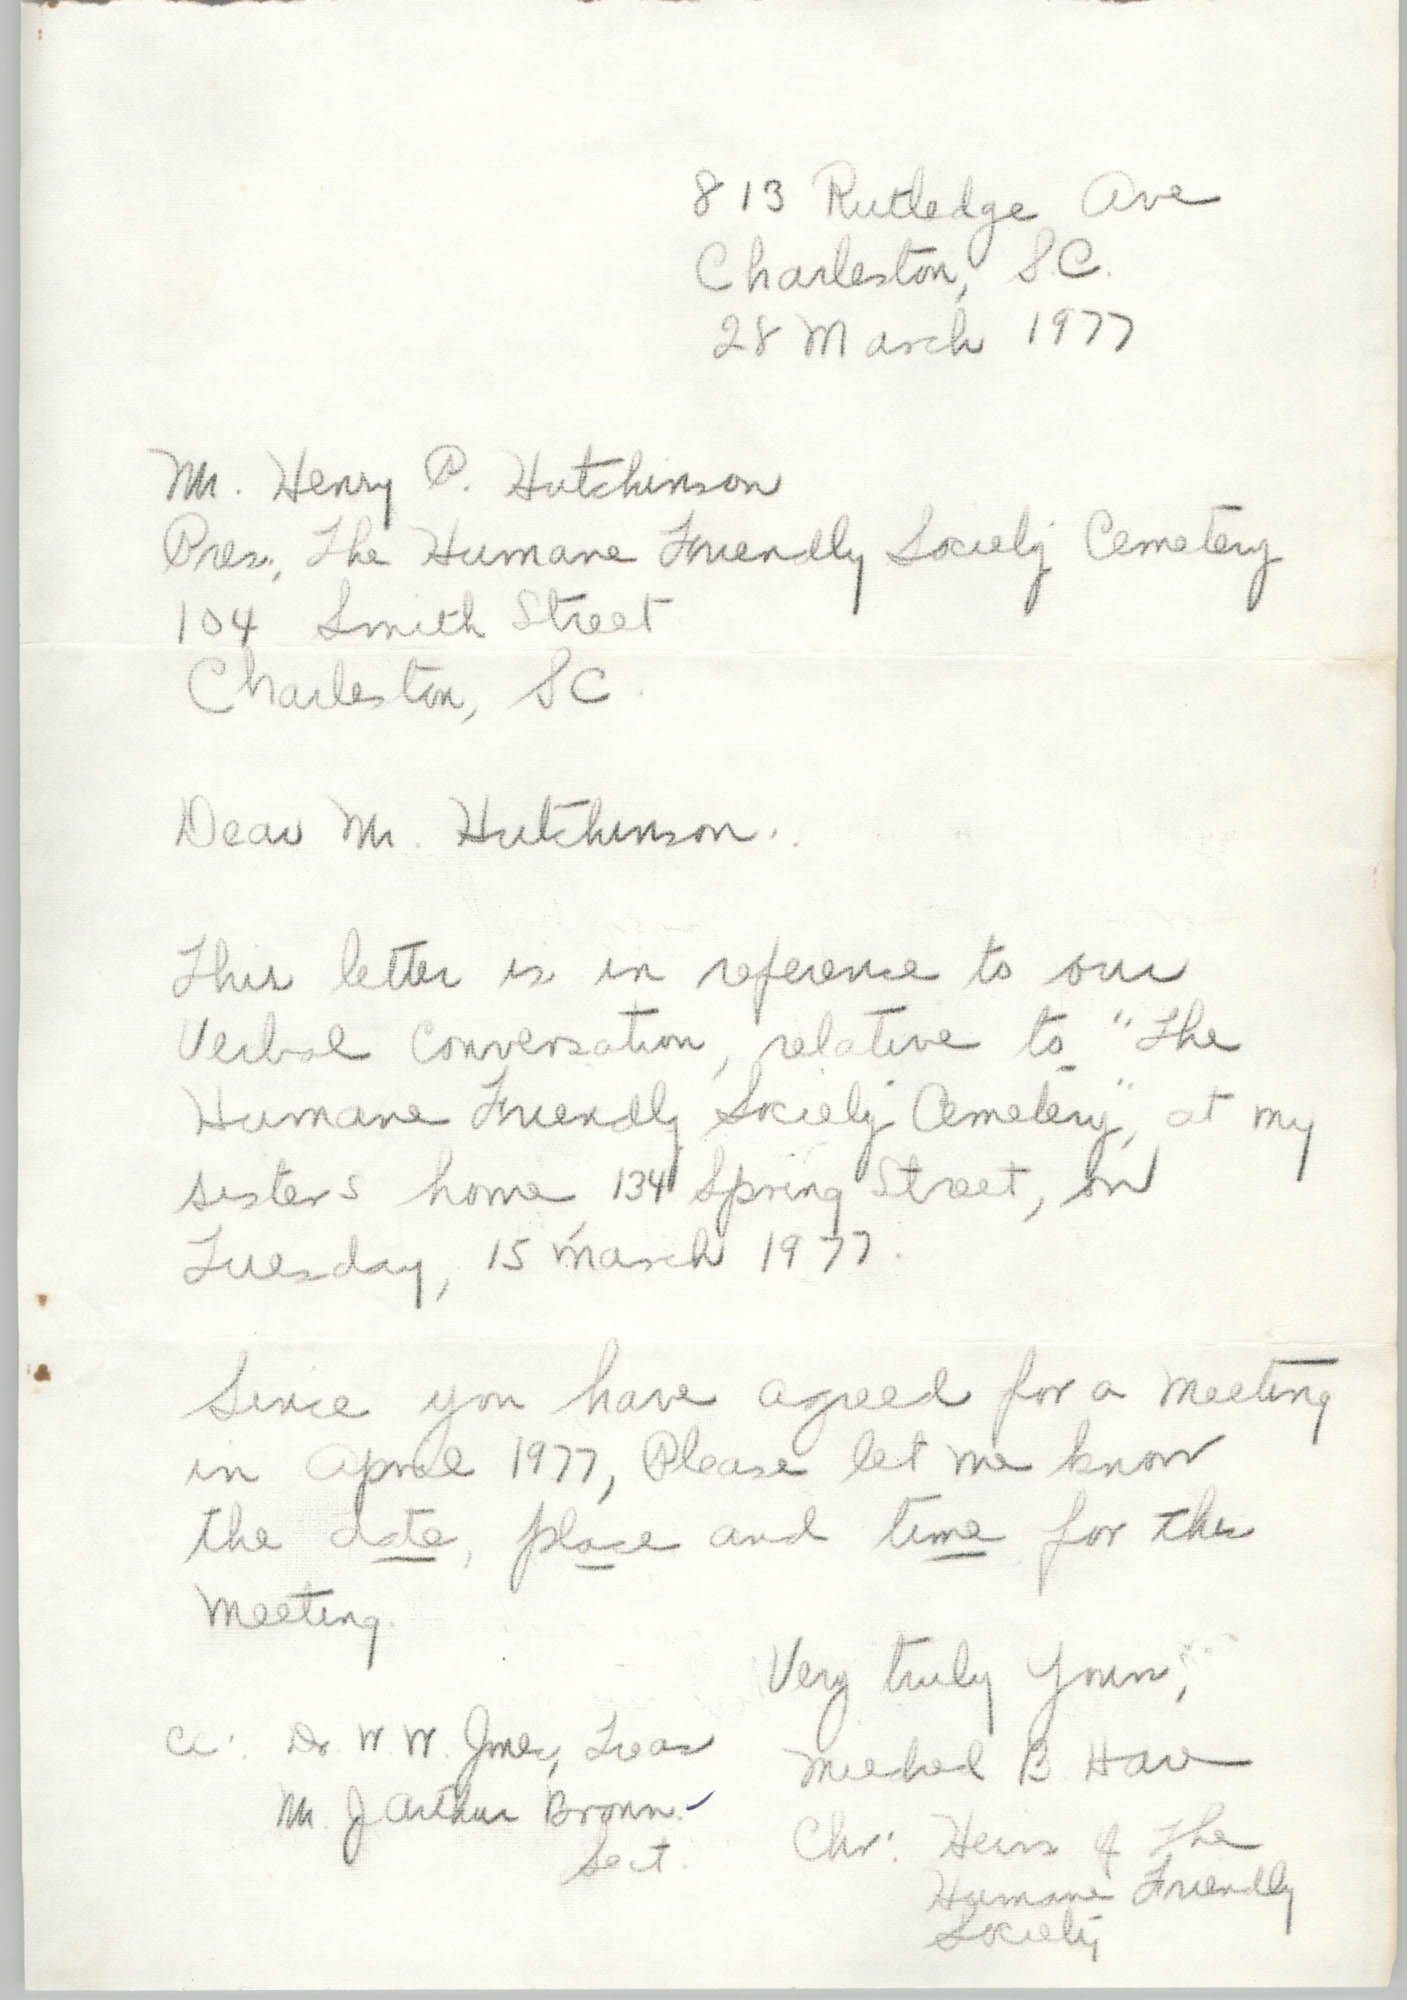 Letter to Henry P. Hutchinson, March 28, 1977